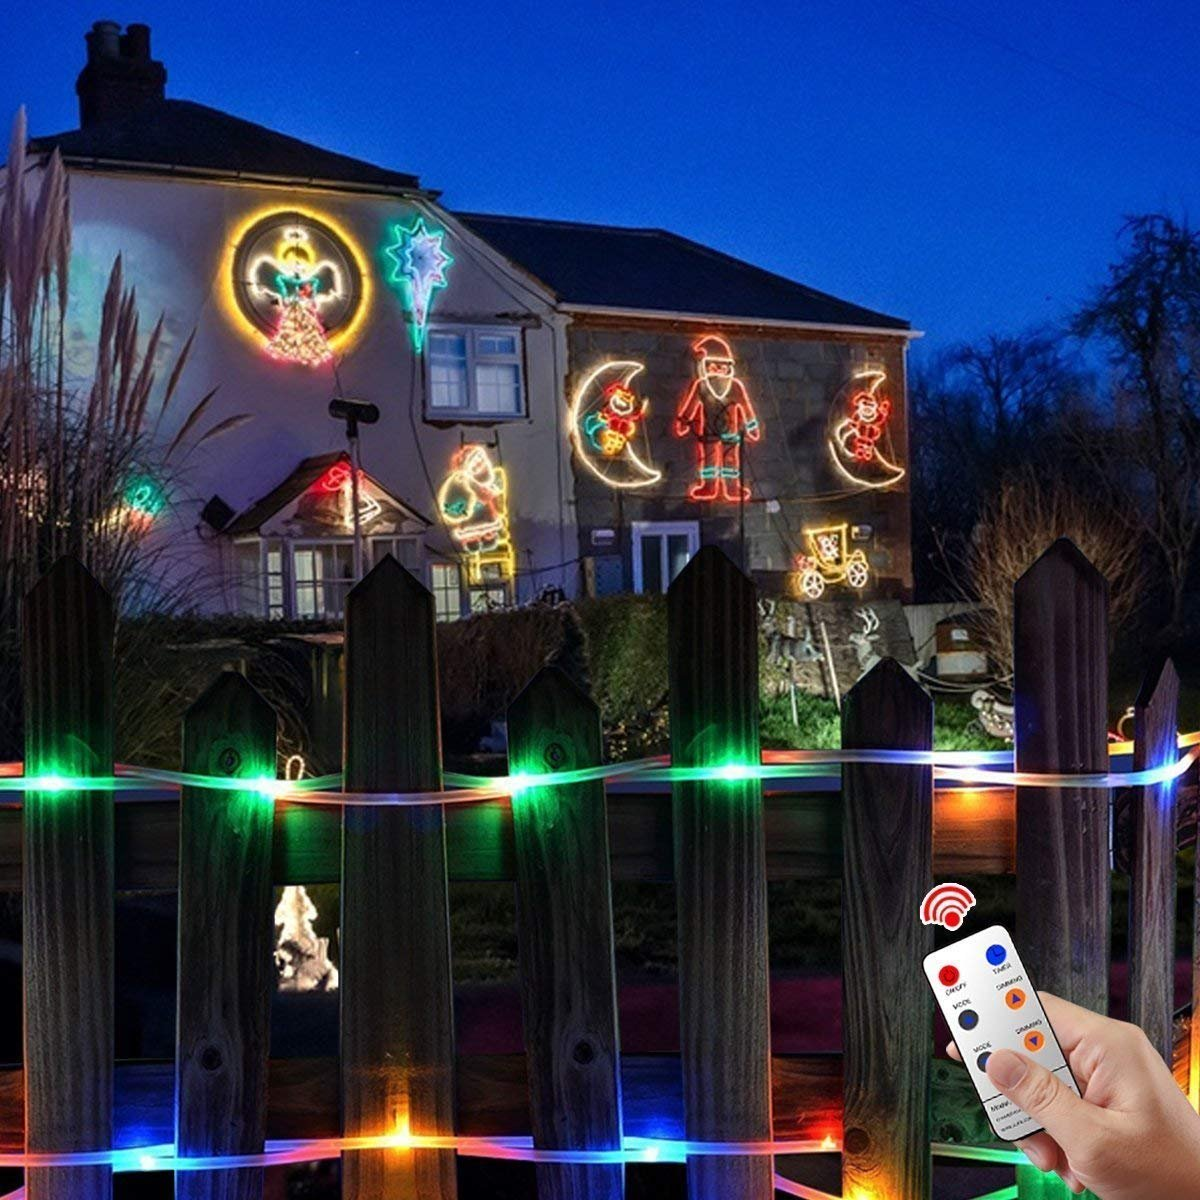 Zinuo LED String Rope Lights 33FT 136 LED Waterproof Outdoor Rope Lights, RF Remote, 8 Modes/Timer, Multi Color Patio Lights for Gardens Parties Wedding Holiday Decor (A Power Adaptor Included) by Zinuo (Image #4)